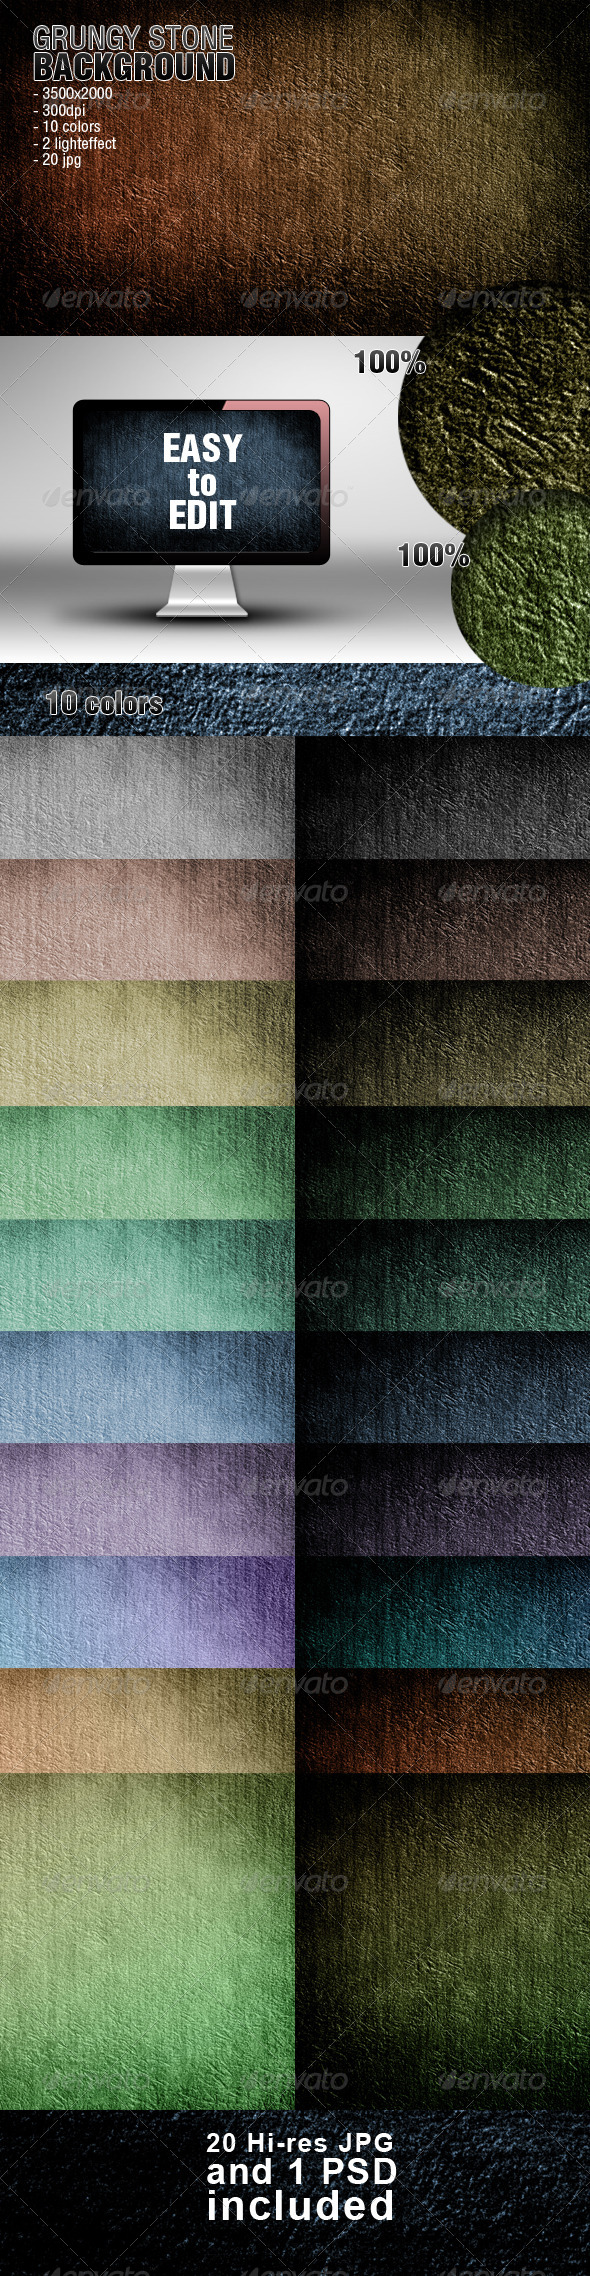 GraphicRiver Grungy Stone Background 4600546